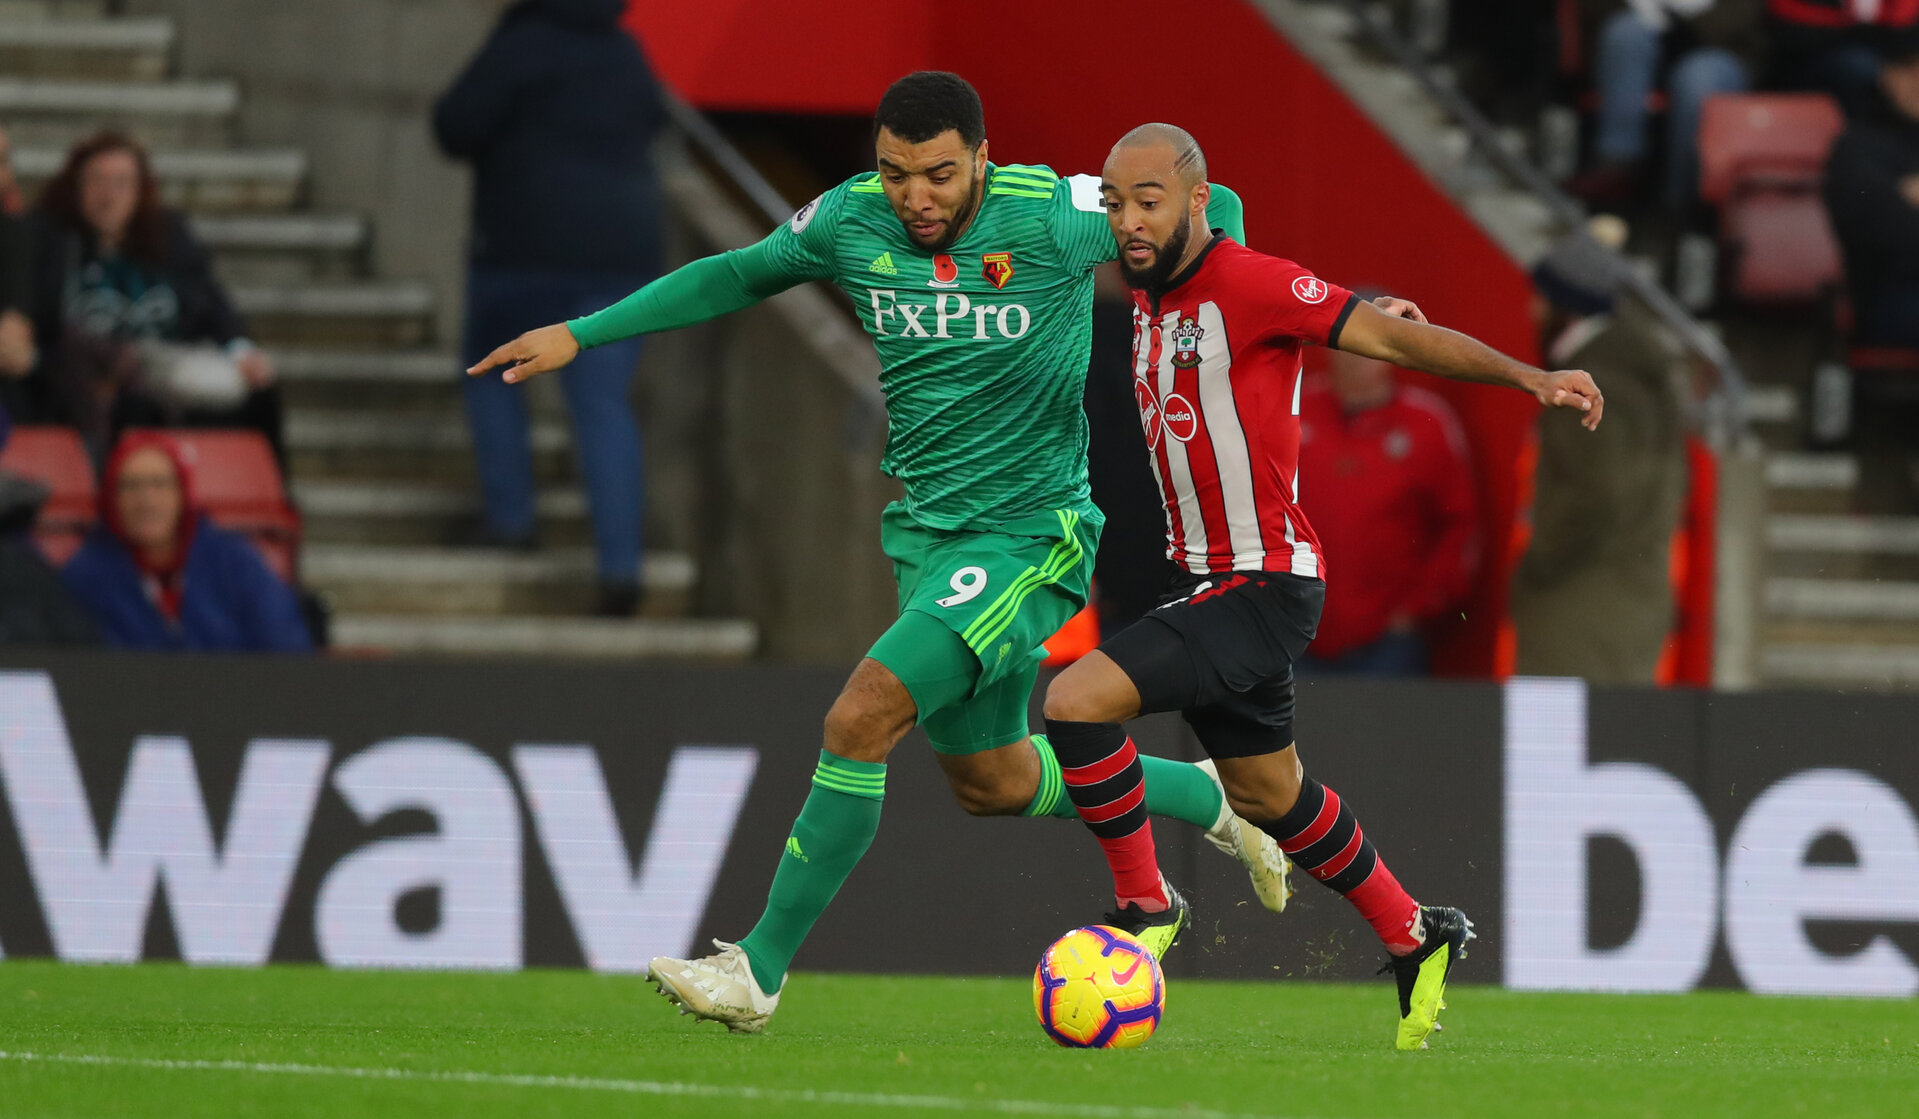 SOUTHAMPTON, ENGLAND - NOVEMBER 10: Nathan Redmond(R) of Southampton and Troy Deeney of Watford during the Premier League match between Southampton FC and Watford FC at St Mary's Stadium on November 10, 2018 in Southampton, United Kingdom. (Photo by Matt Watson/Southampton FC via Getty Images)